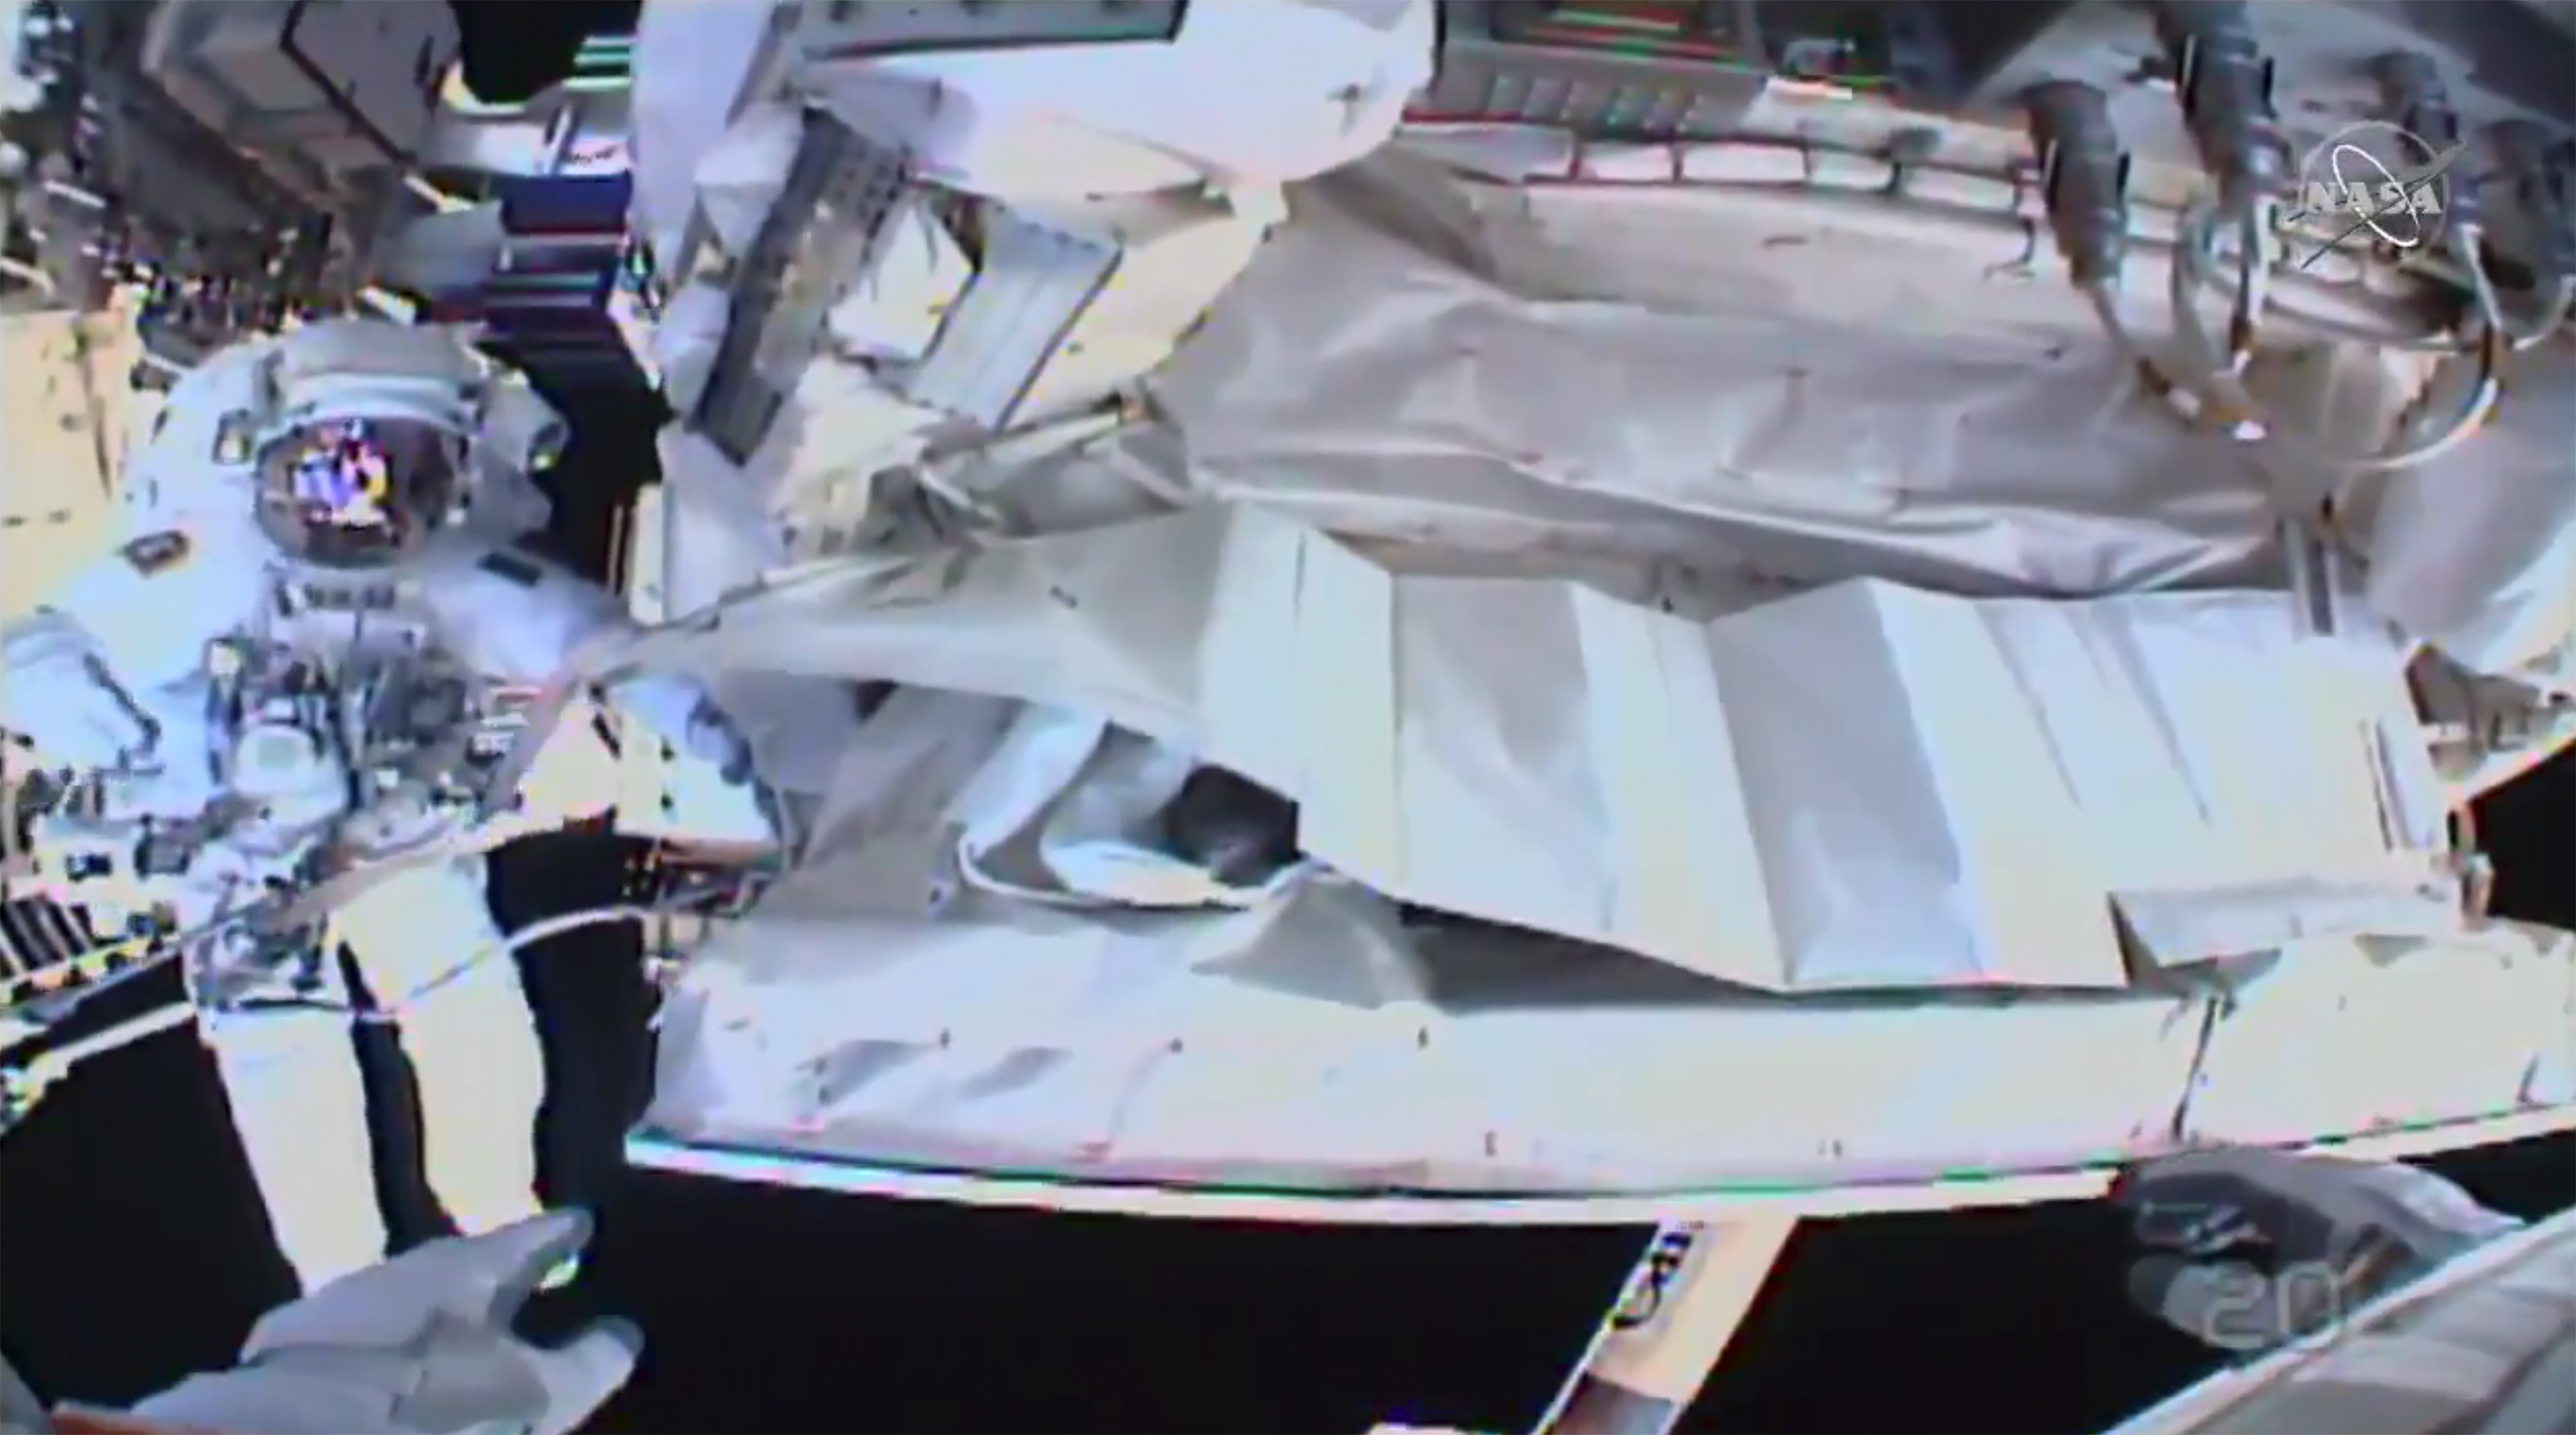 This photo provided by NASA shows the view from NASA's Andrew Morgan's helmet cam as Italian astronaut Luca Parmitano works outside the International Space Station during a spacewalk on Jan. 25, 2020.